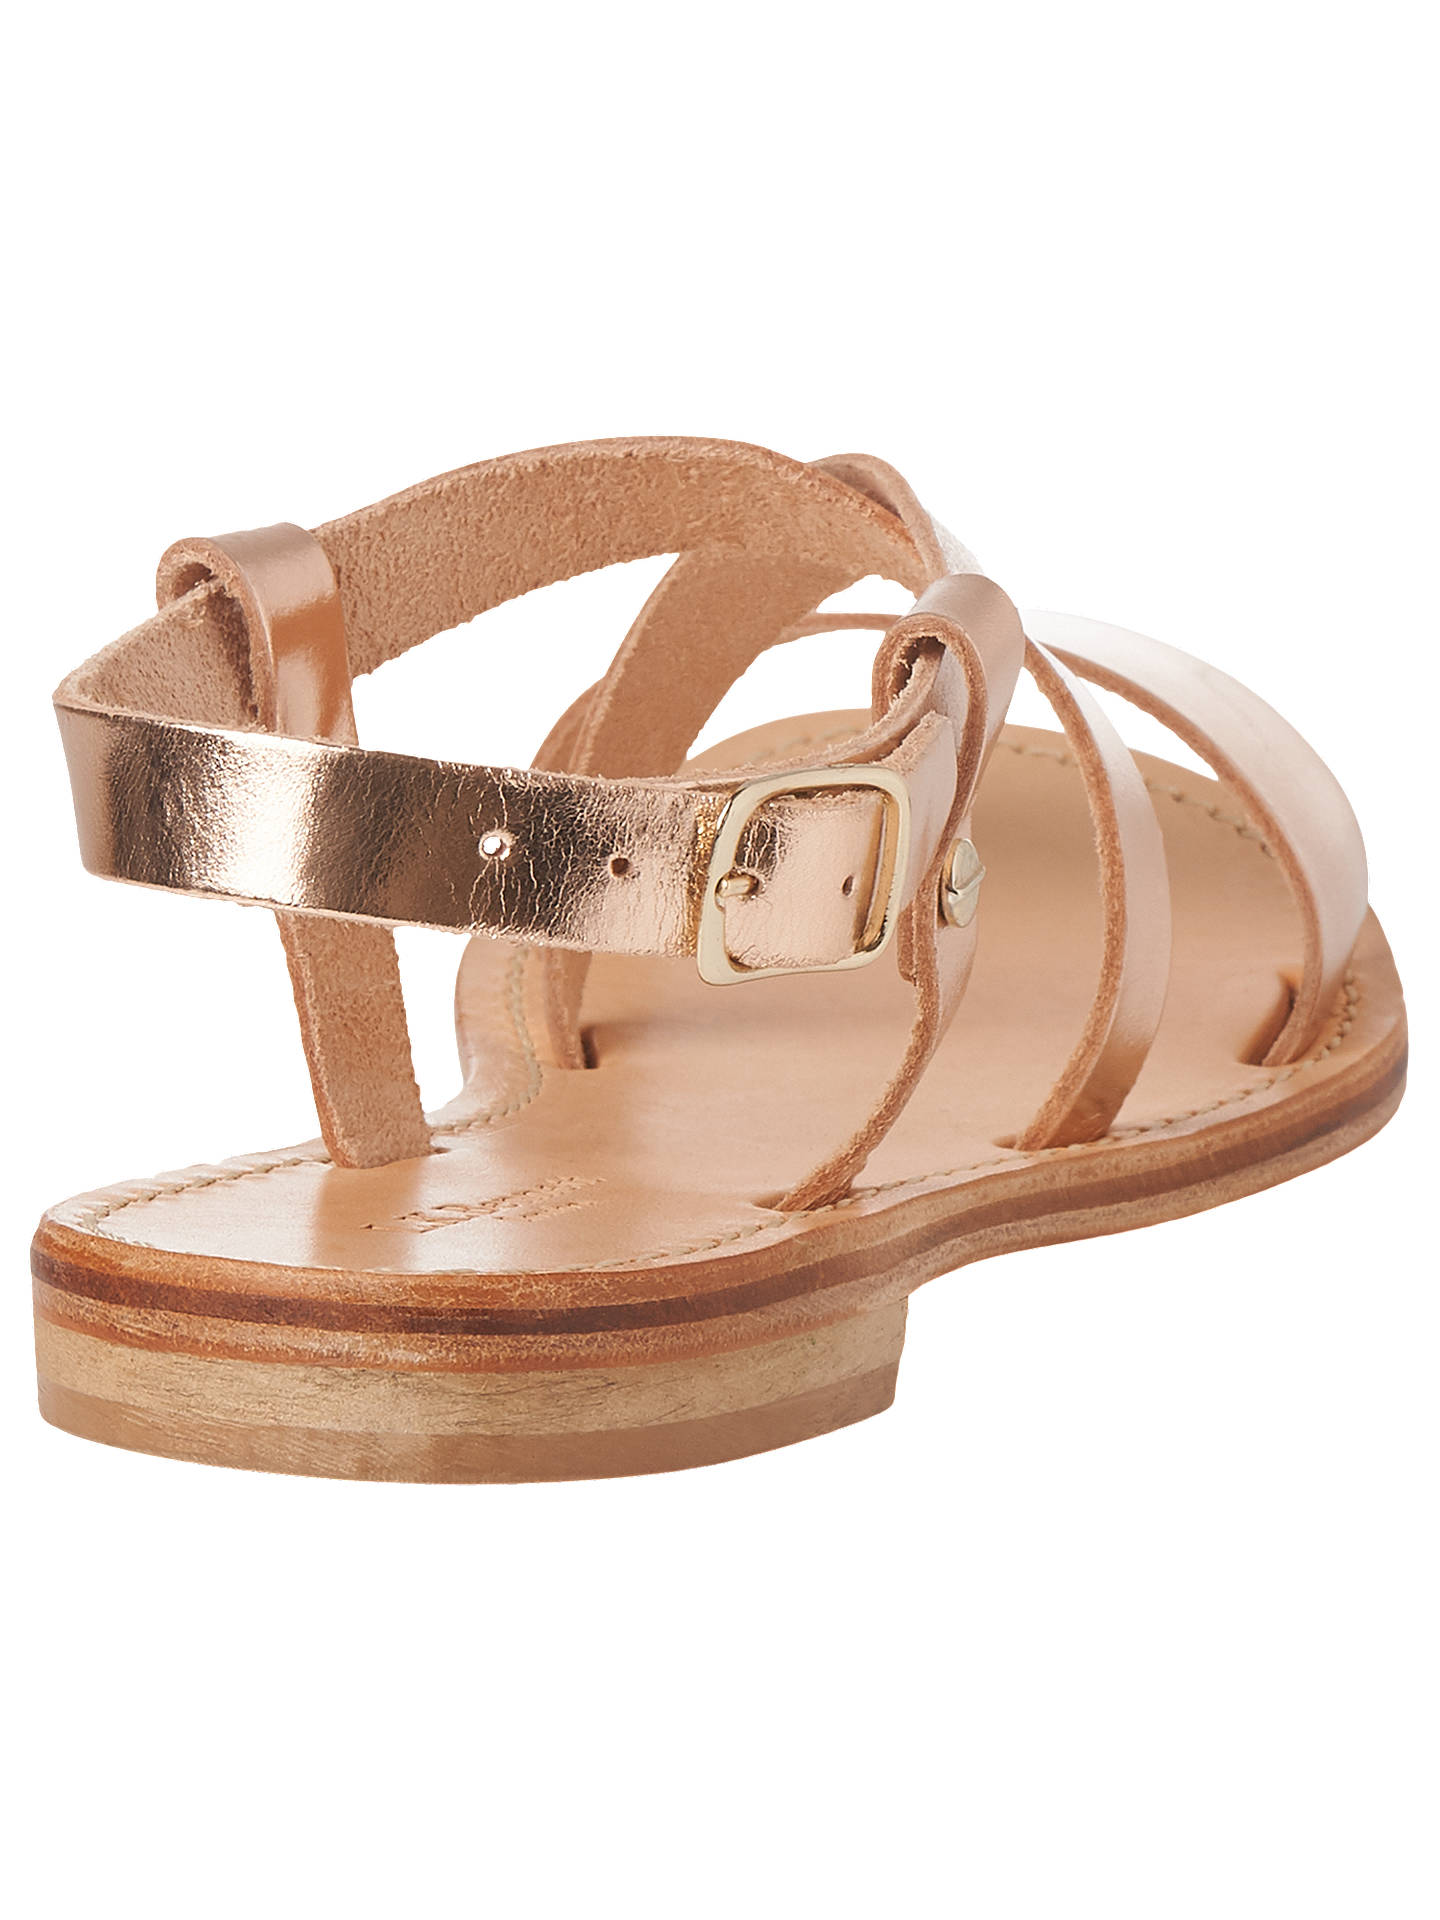 BuyL.K.Bennett Hemera Flat Sandals, Rose Gold Leather, 4 Online at johnlewis.com